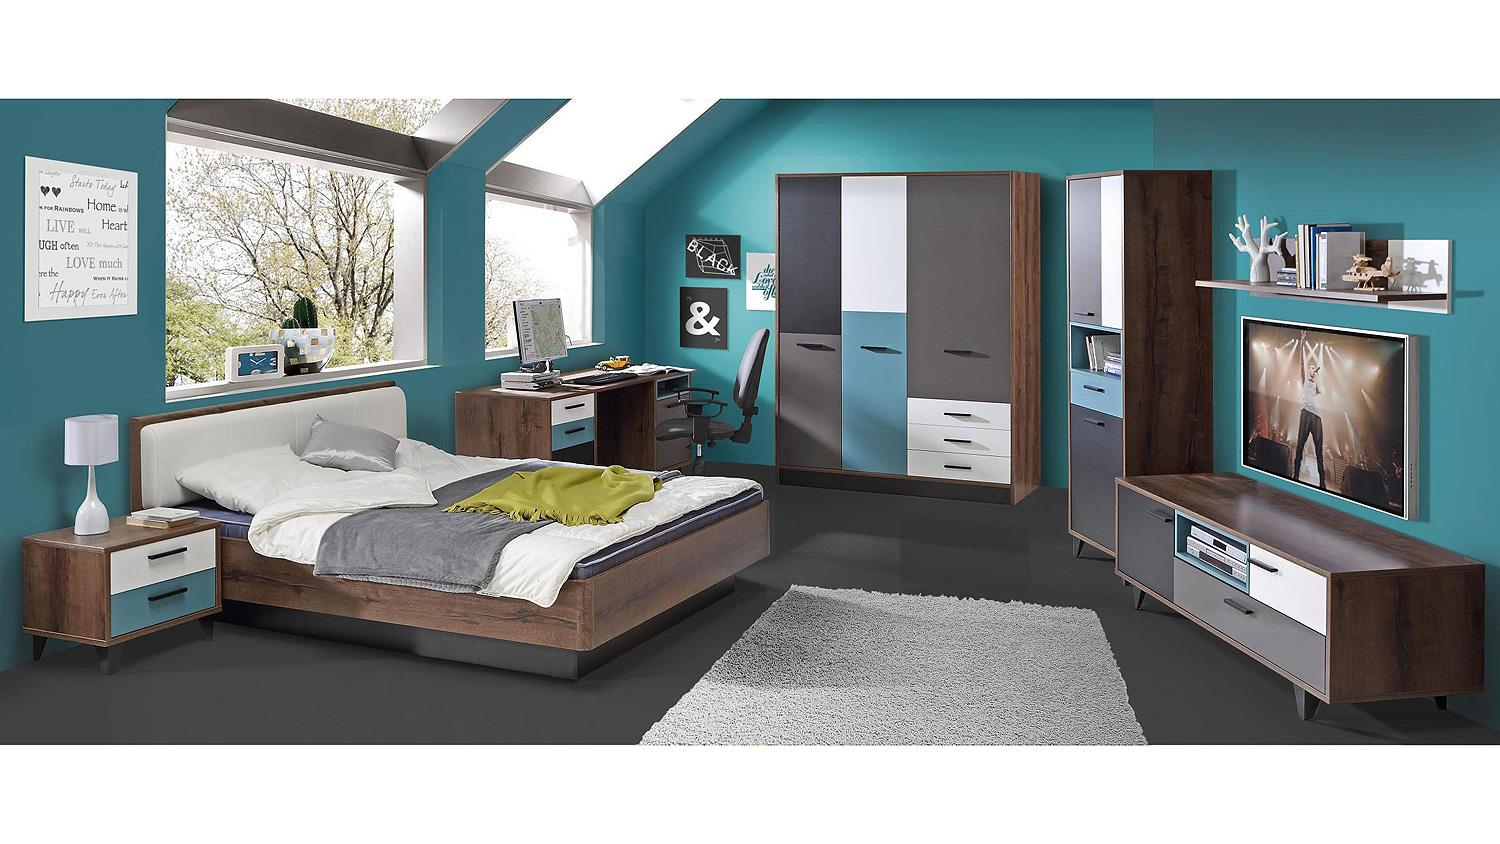 kleiderschrank raven schlammeiche wei schwarz gr n grau. Black Bedroom Furniture Sets. Home Design Ideas